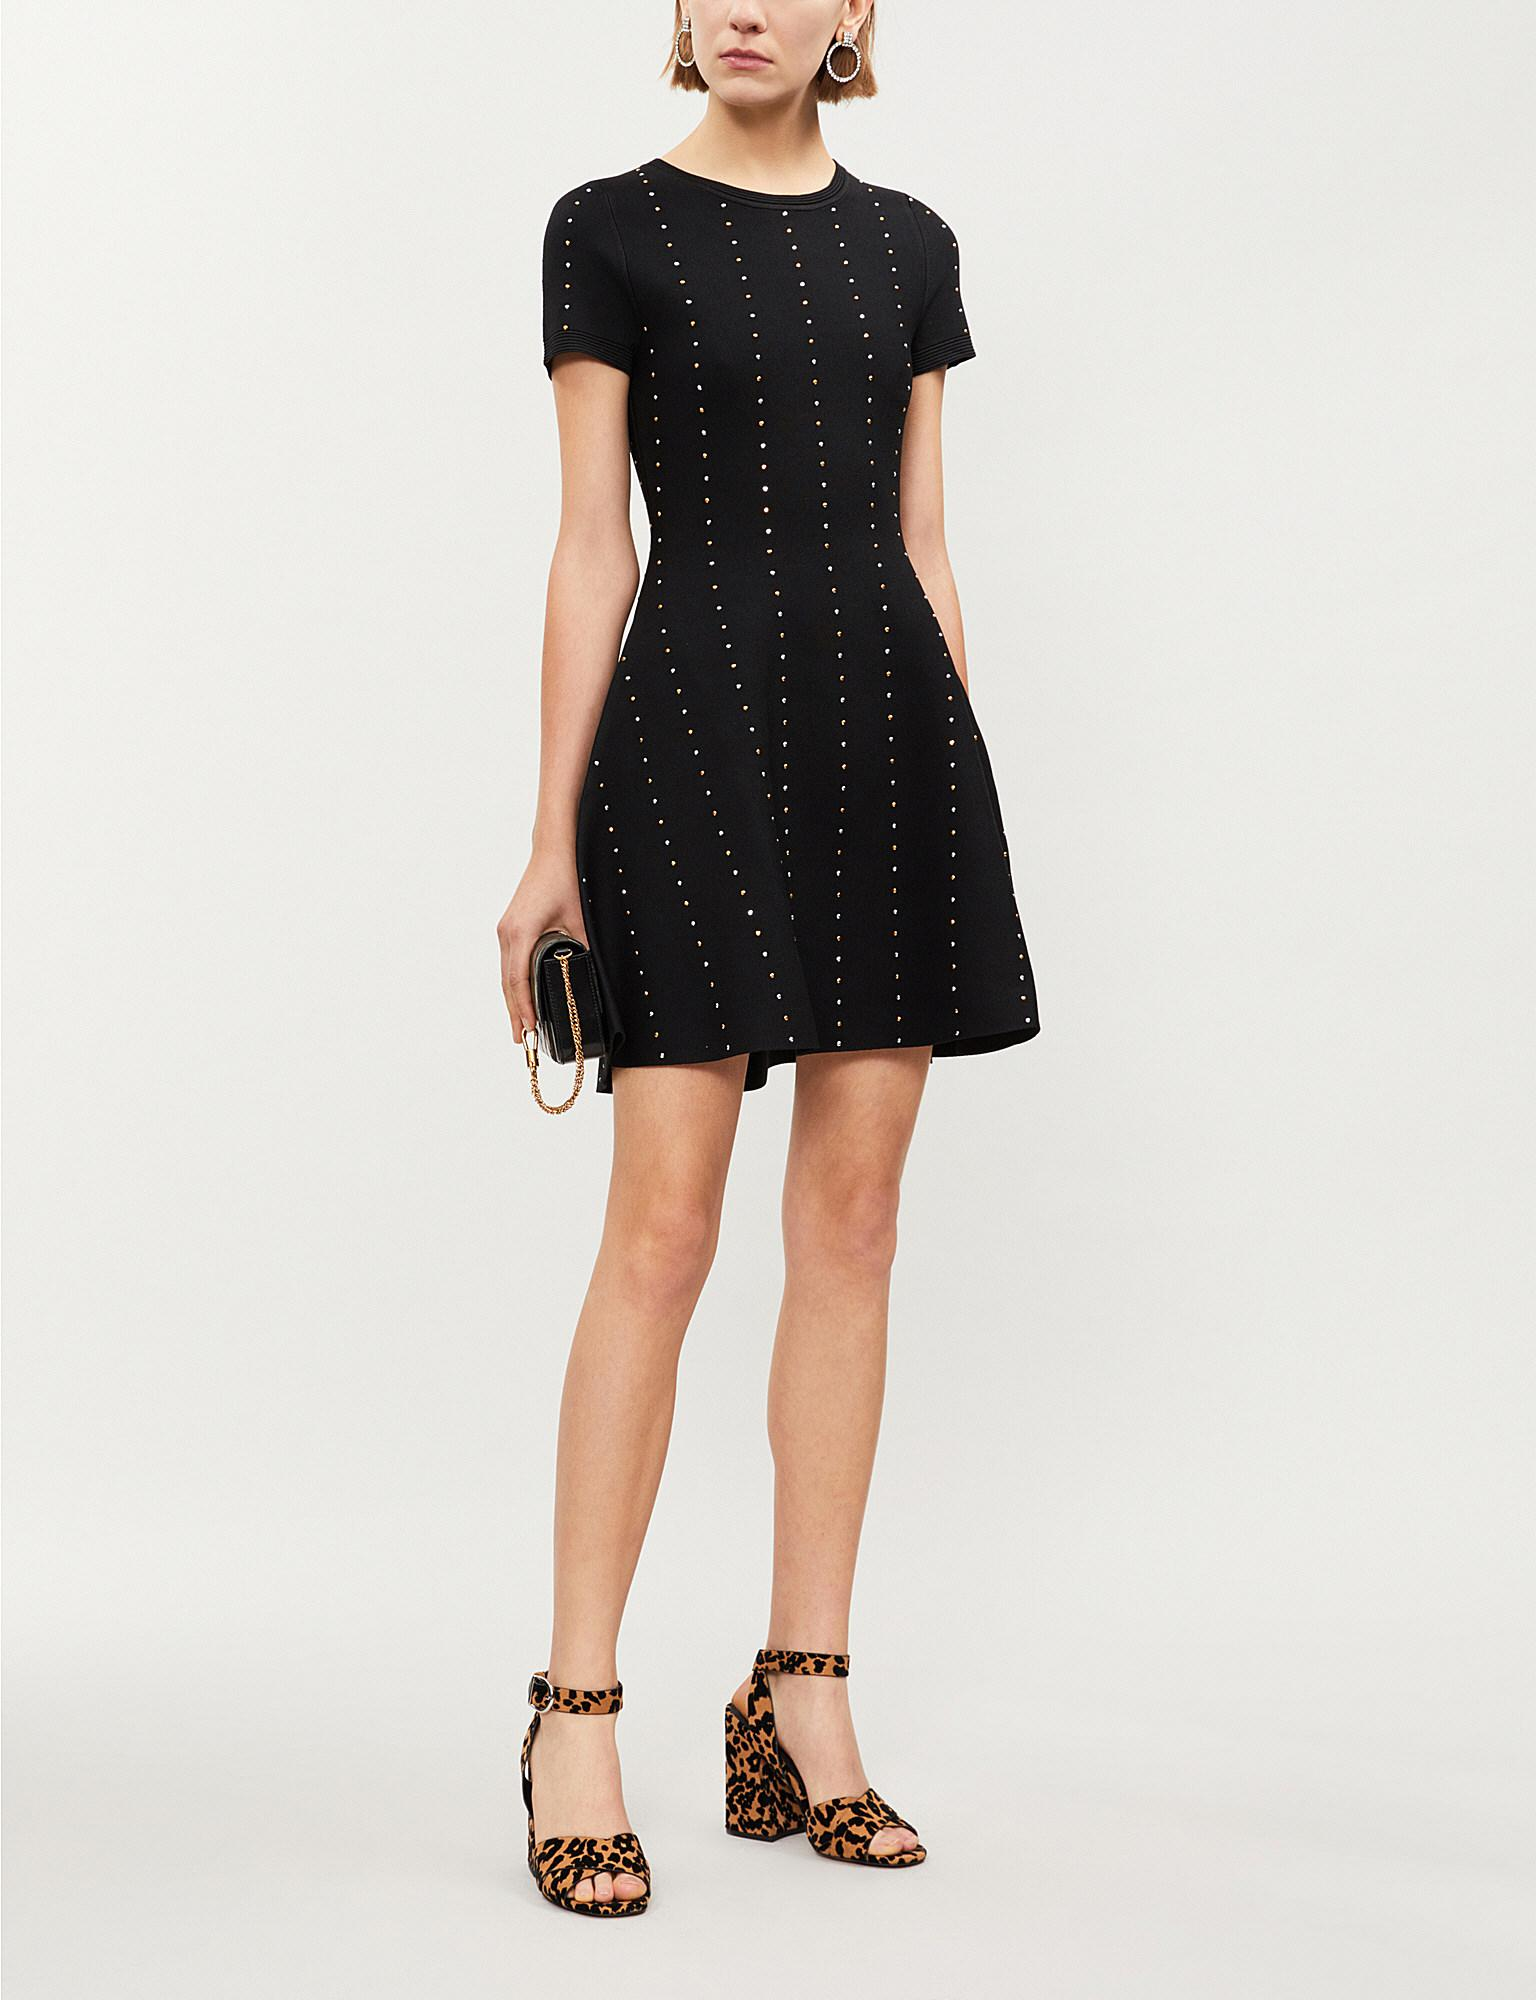 c2ab47b1ecc8 The Kooples Studded Stretch-knit Mini Dress in Black - Lyst